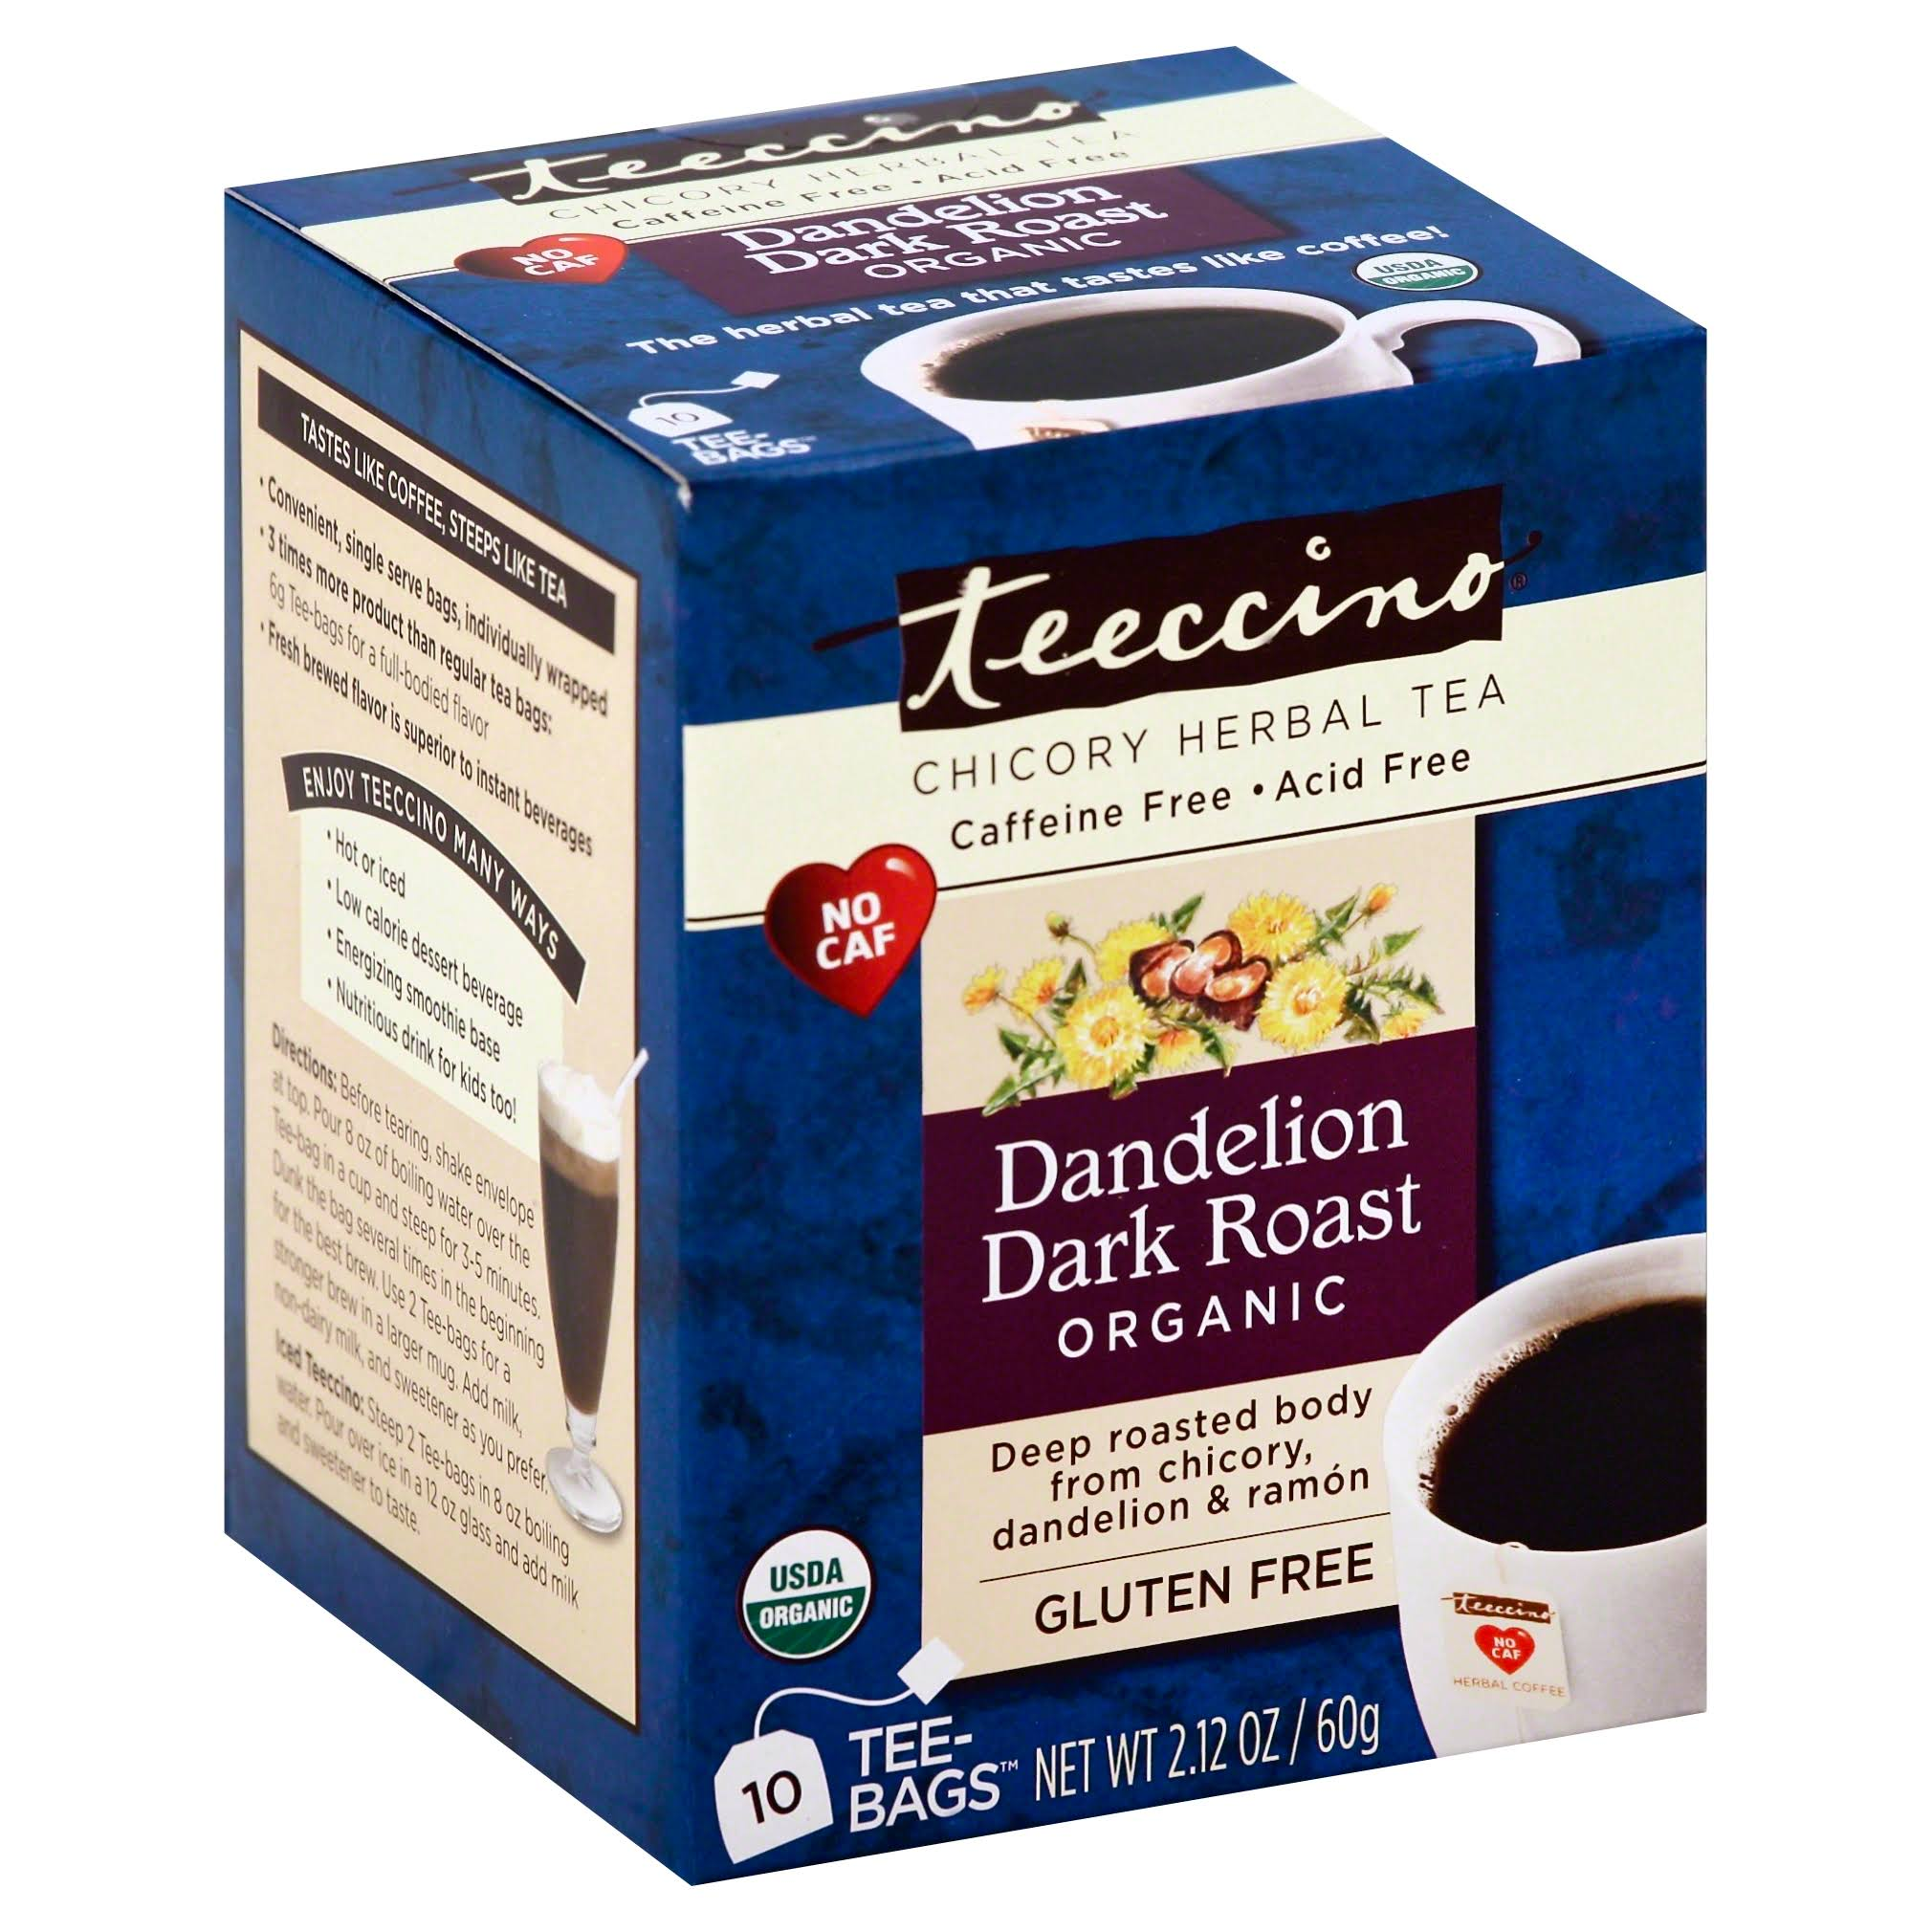 Teeccino Herbal Coffee - Dandelion Dark Roast, 60g